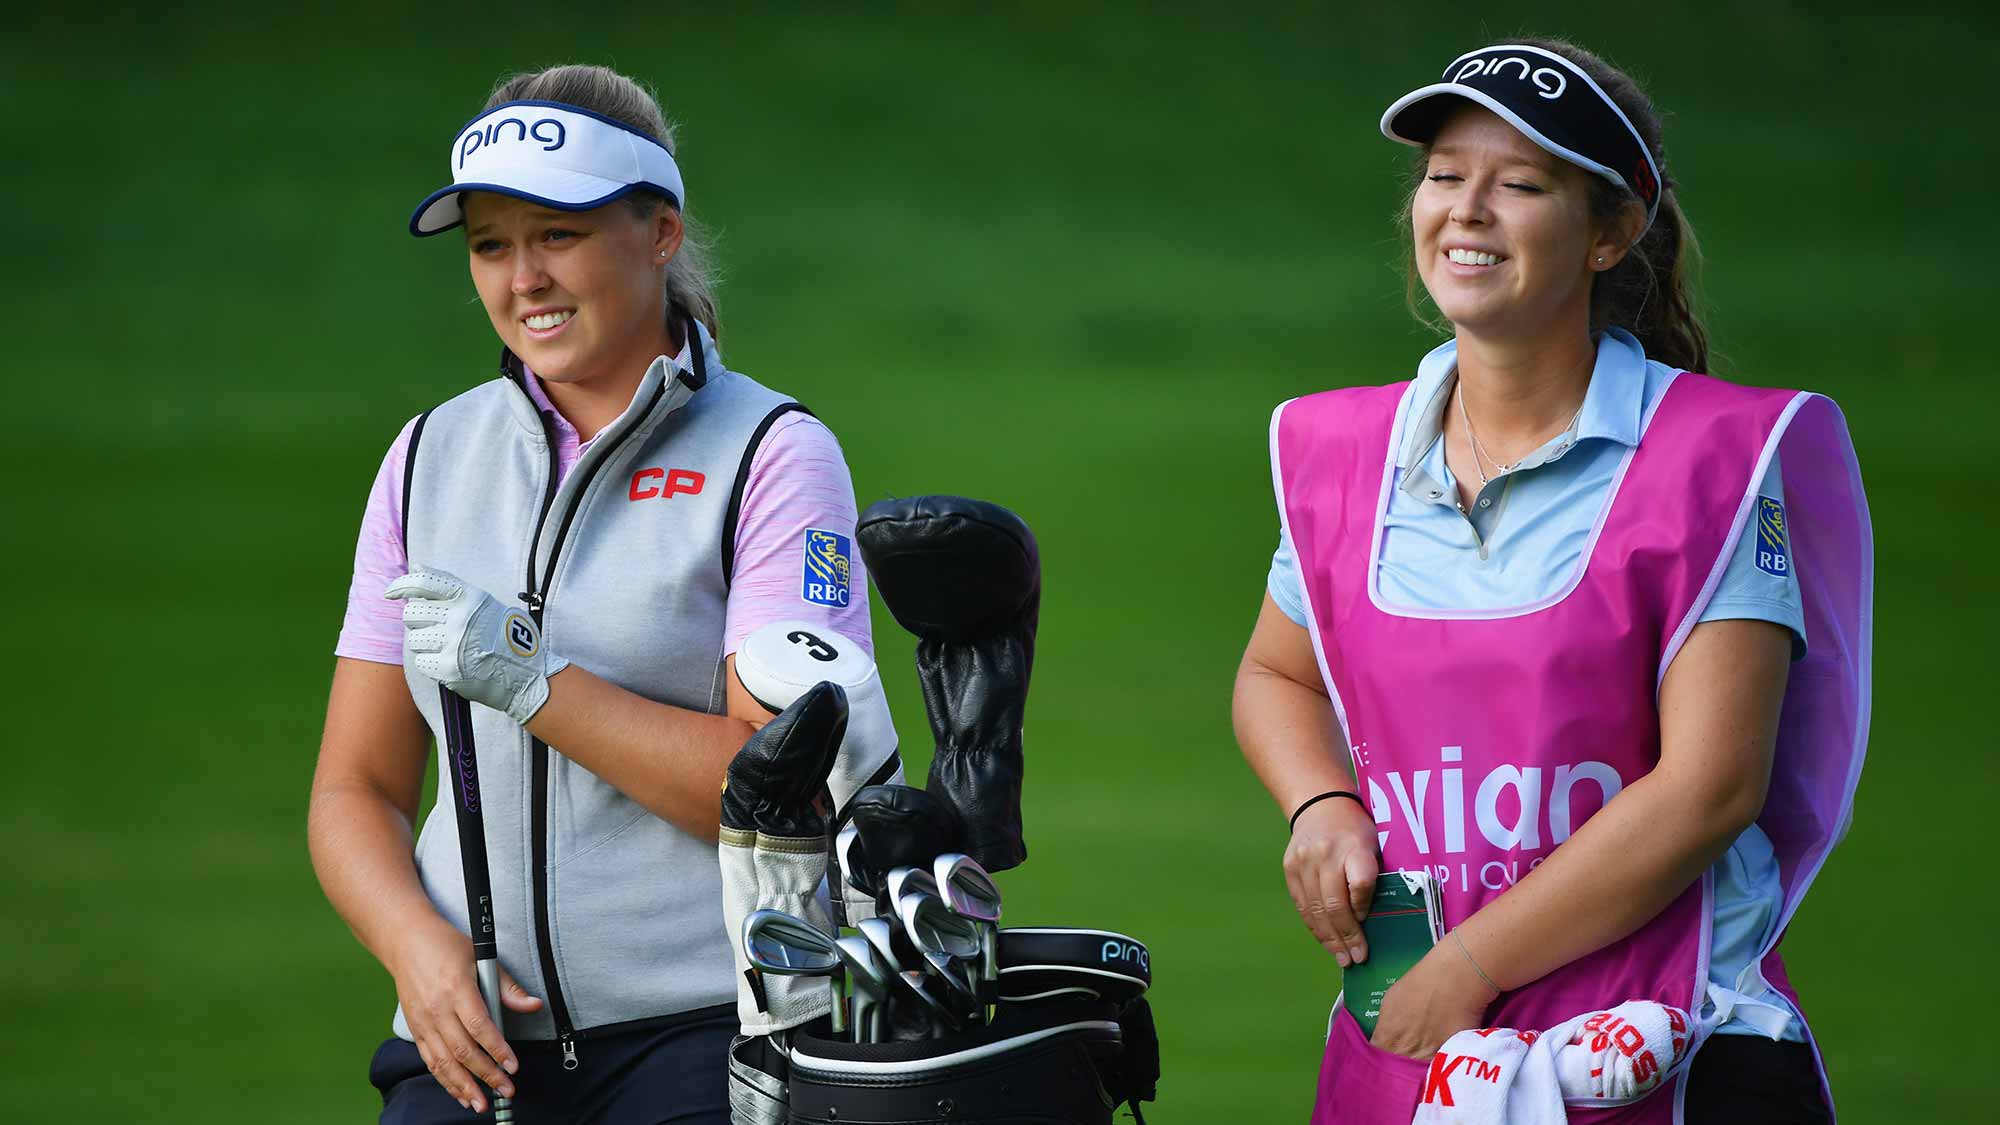 Brooke Henderson of Canada and caddie look on during day one of the Evian Championship at Evian Resort Golf Club on September 13, 2018 in Evian-les-Bains, France